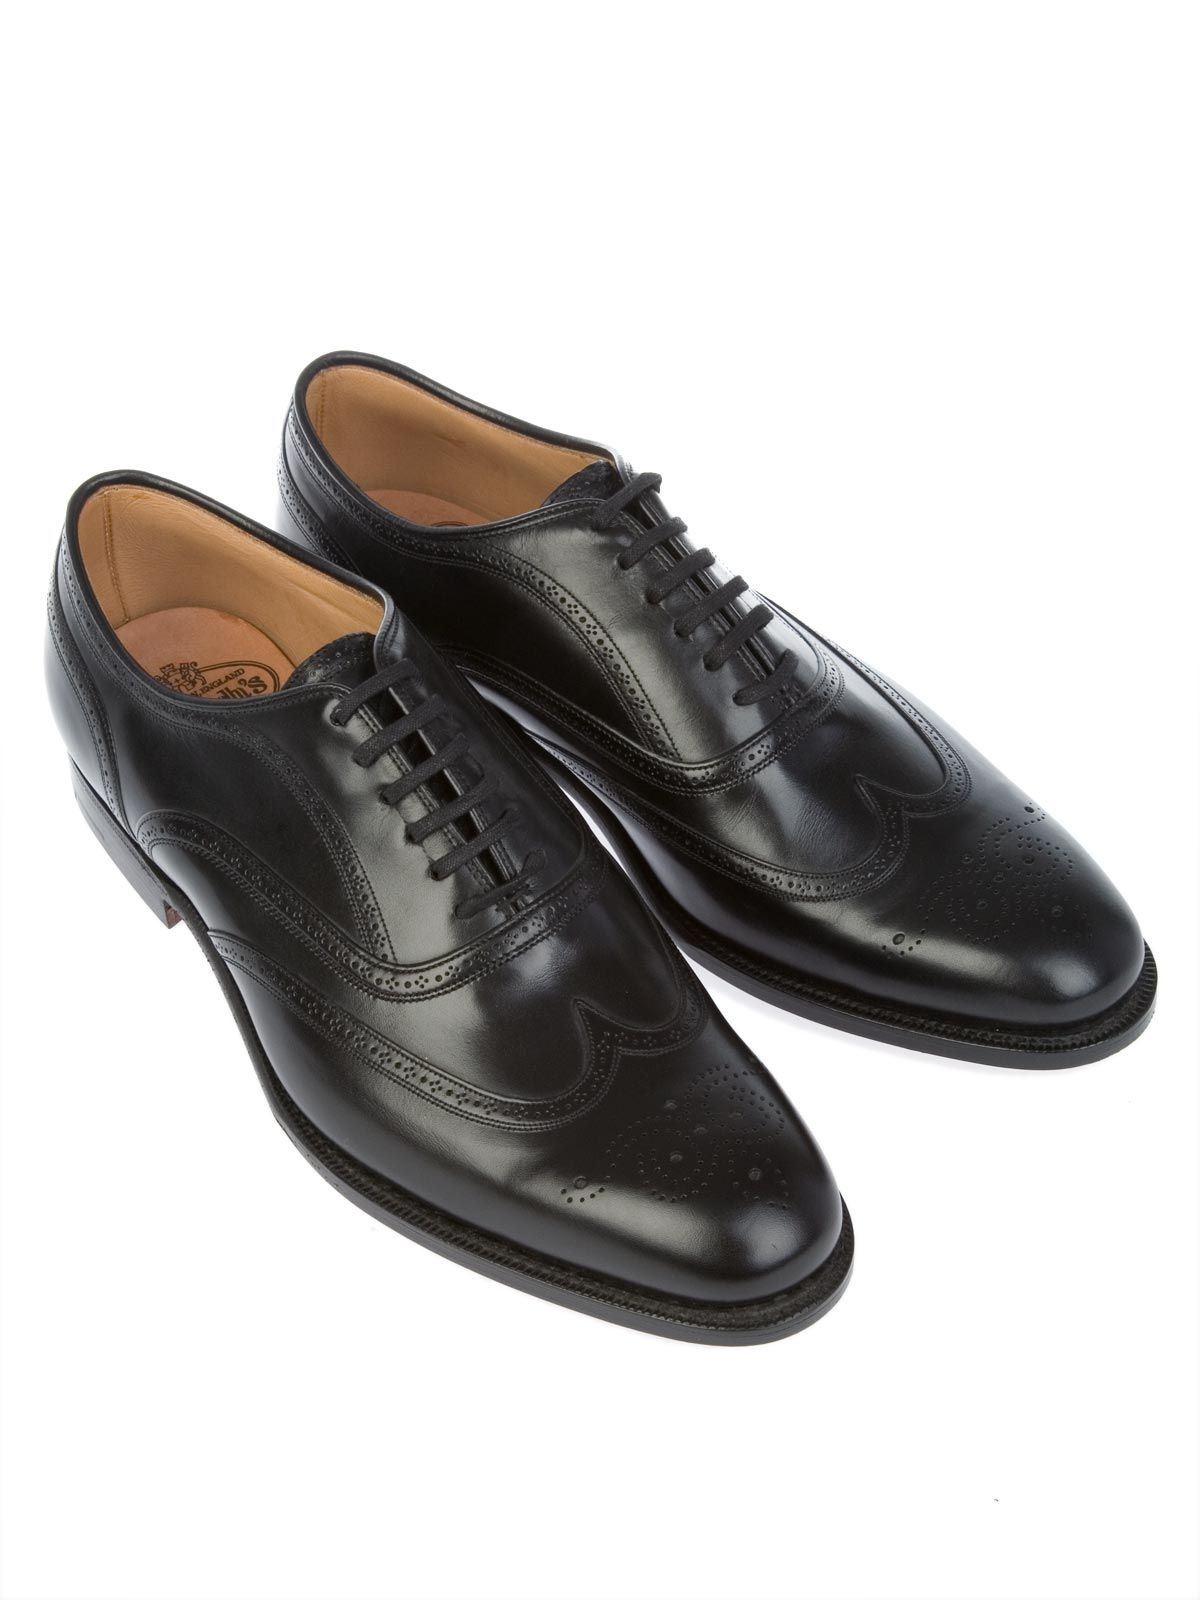 CHURCH'S MEN'S GUNTHORPECALFBLACK BLACK LEATHER LACE-UP SHOES